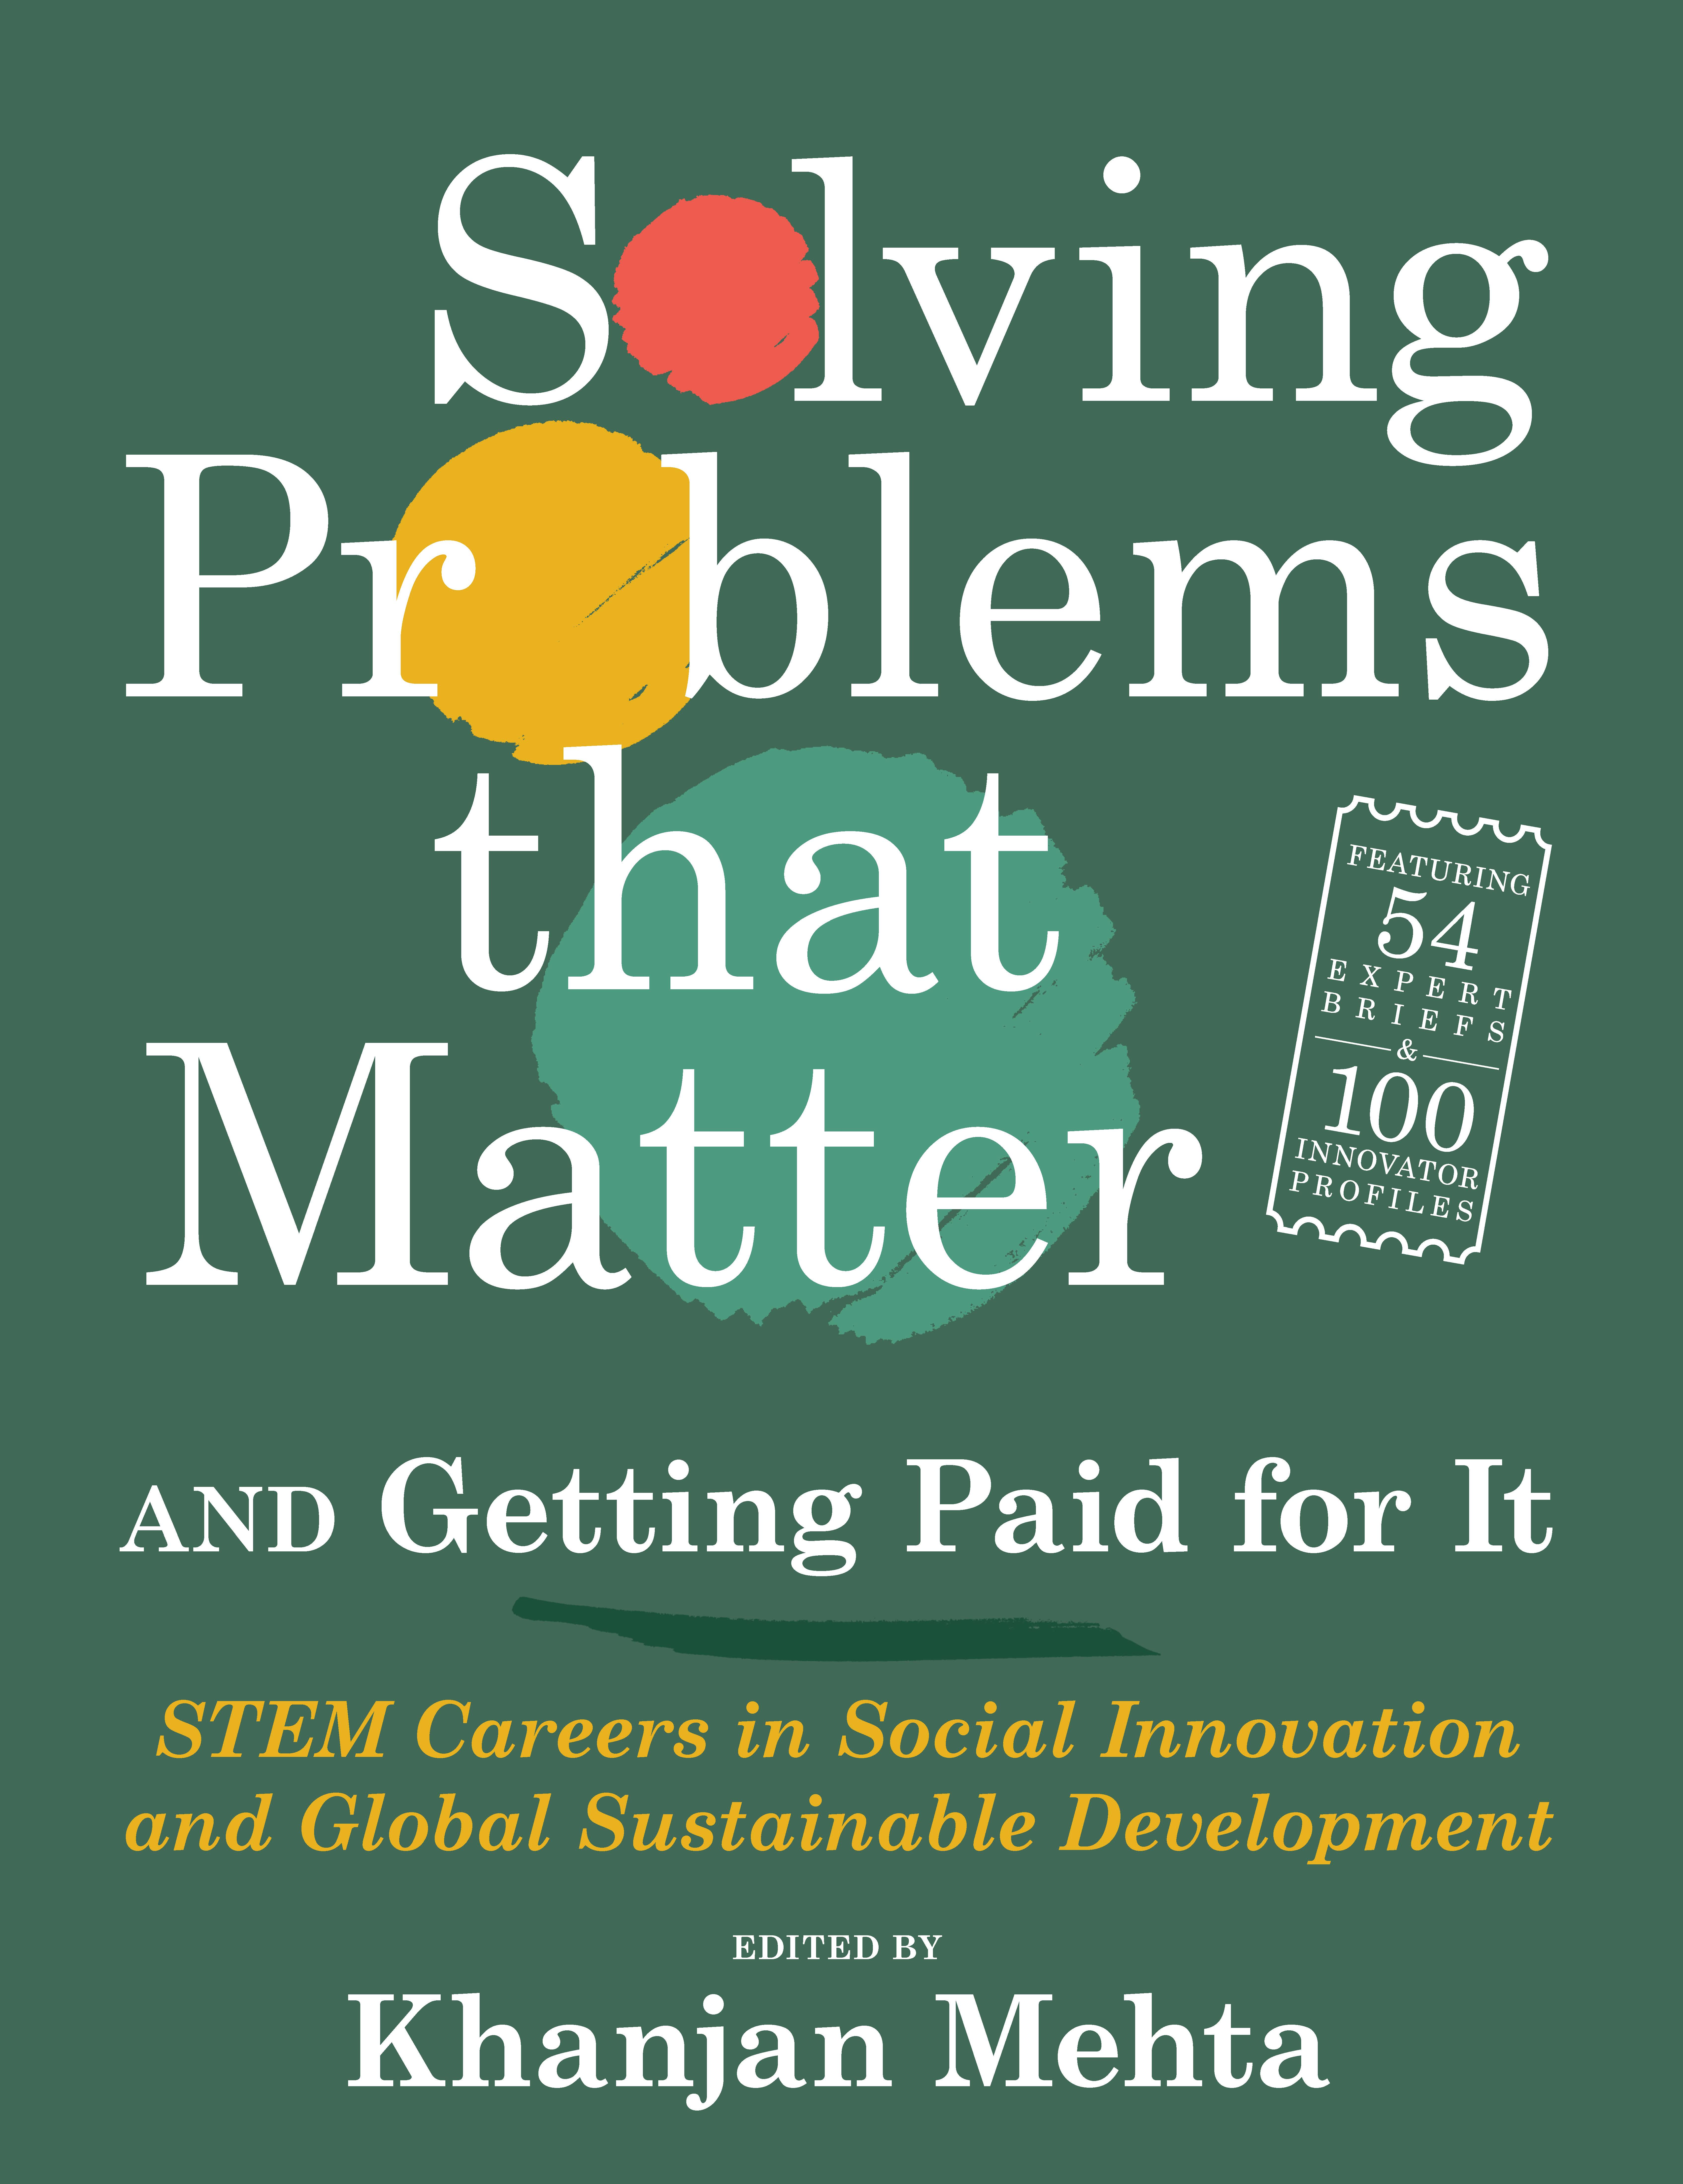 Get paid to solve problems